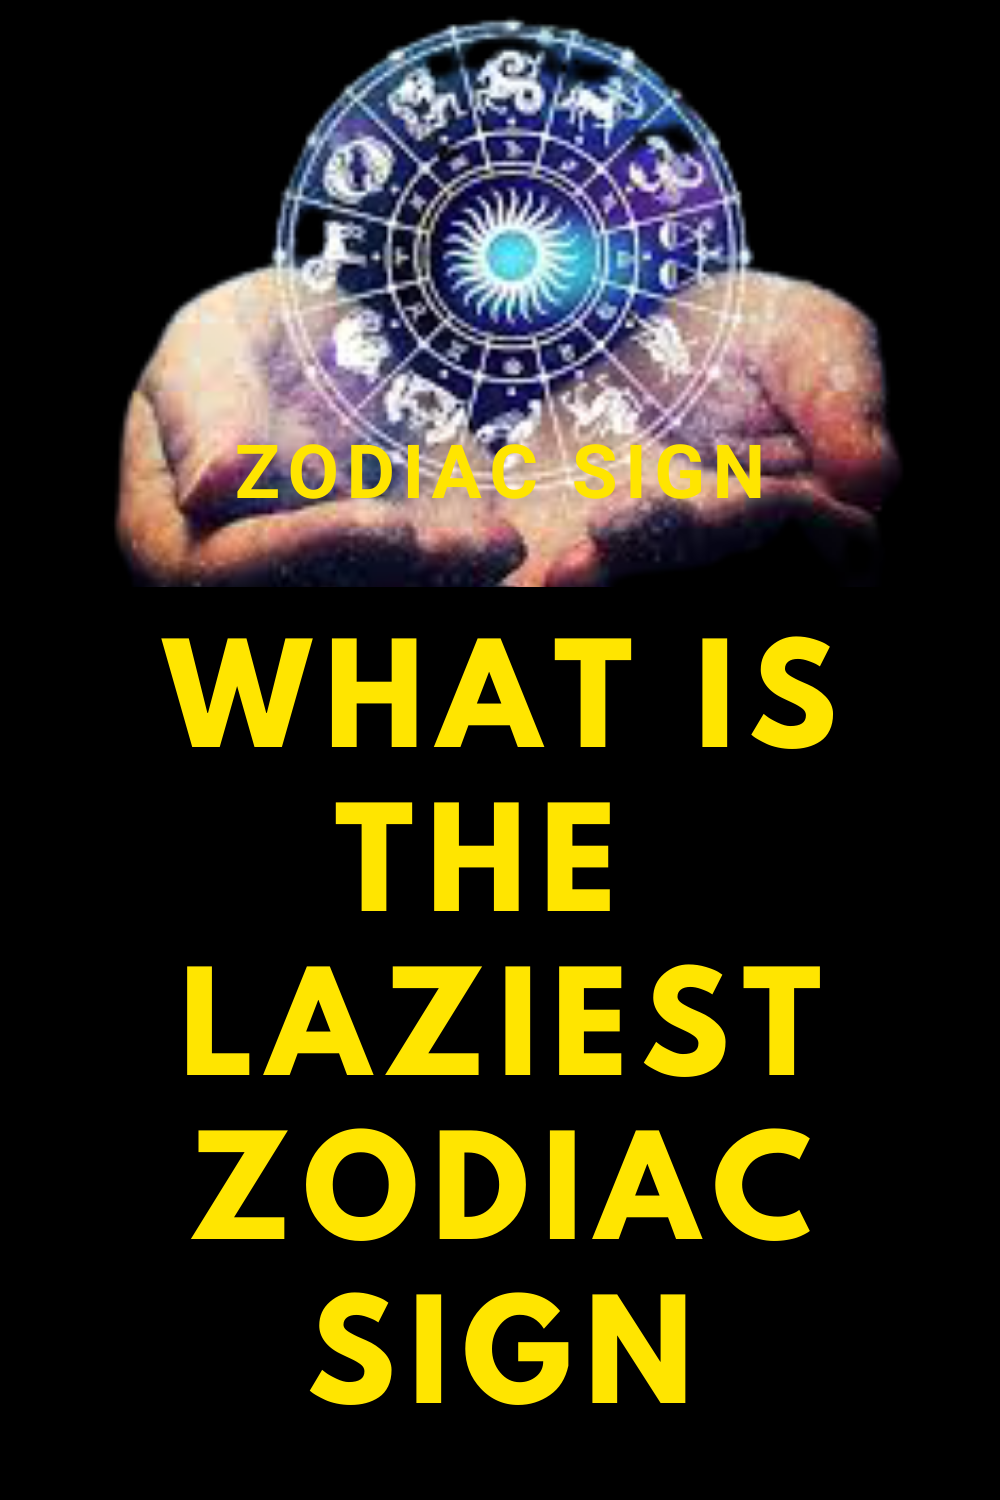 What is the laziest zodiac sign